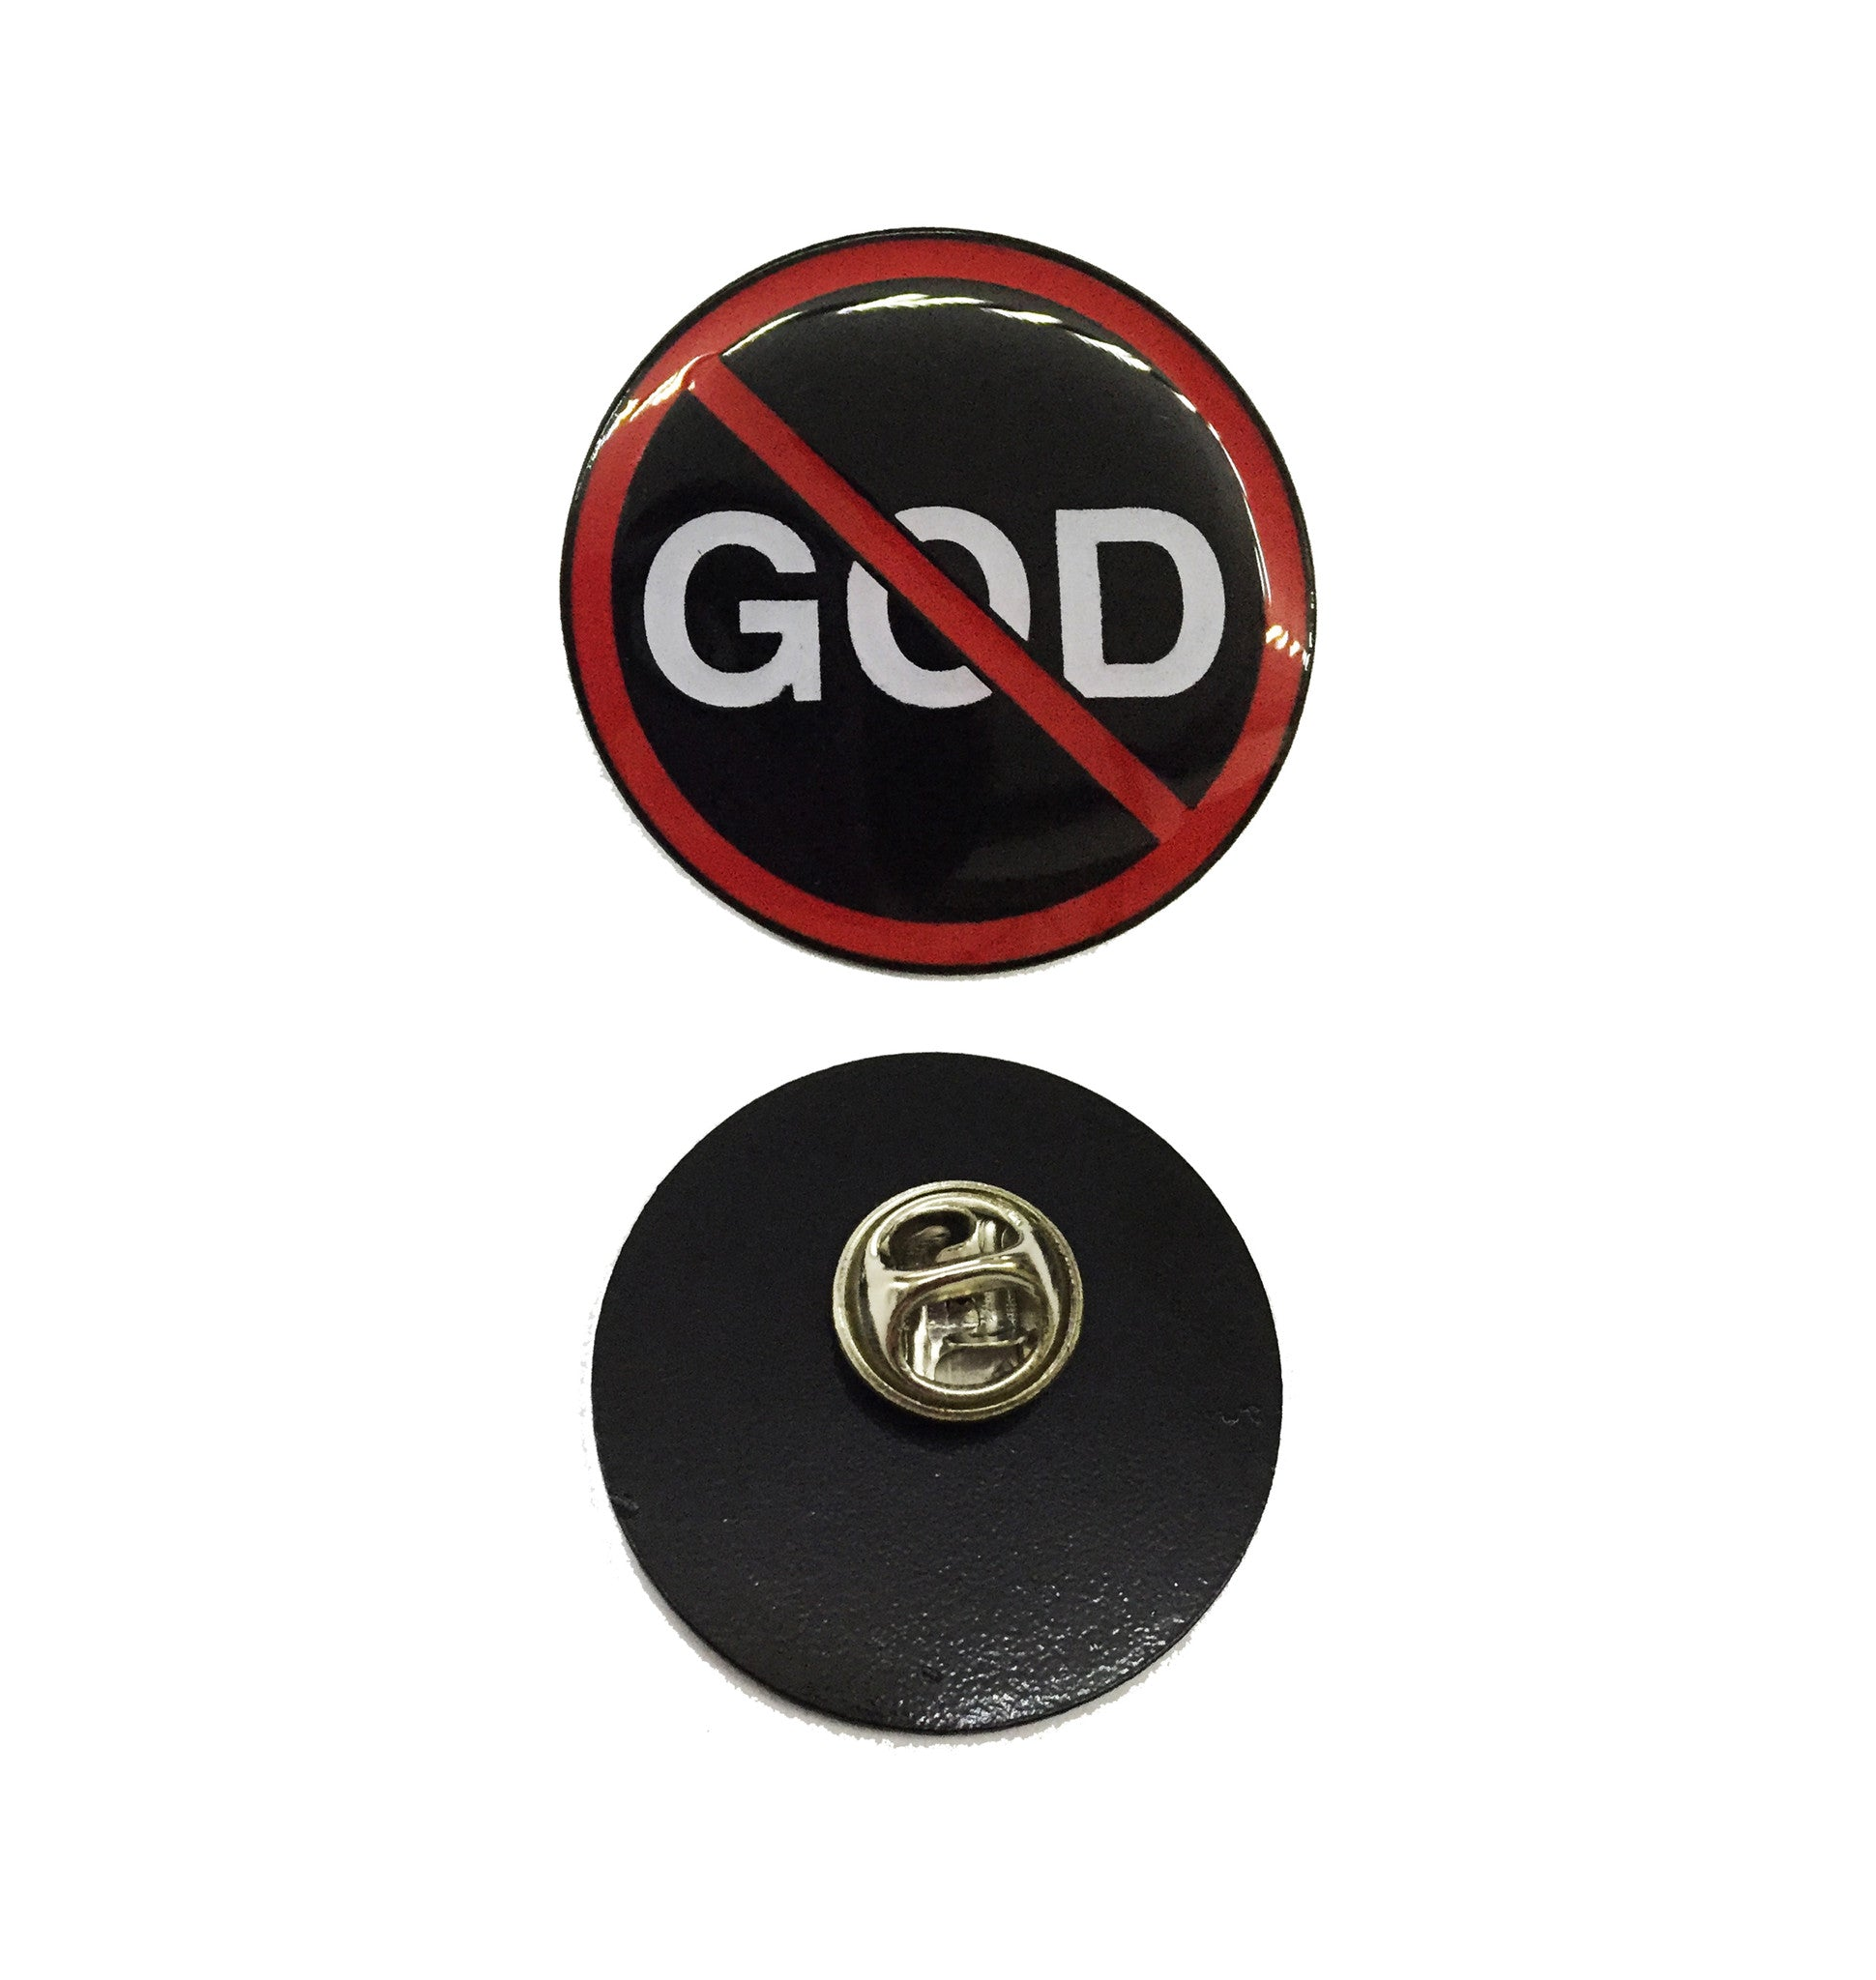 No God - Collectors Pin